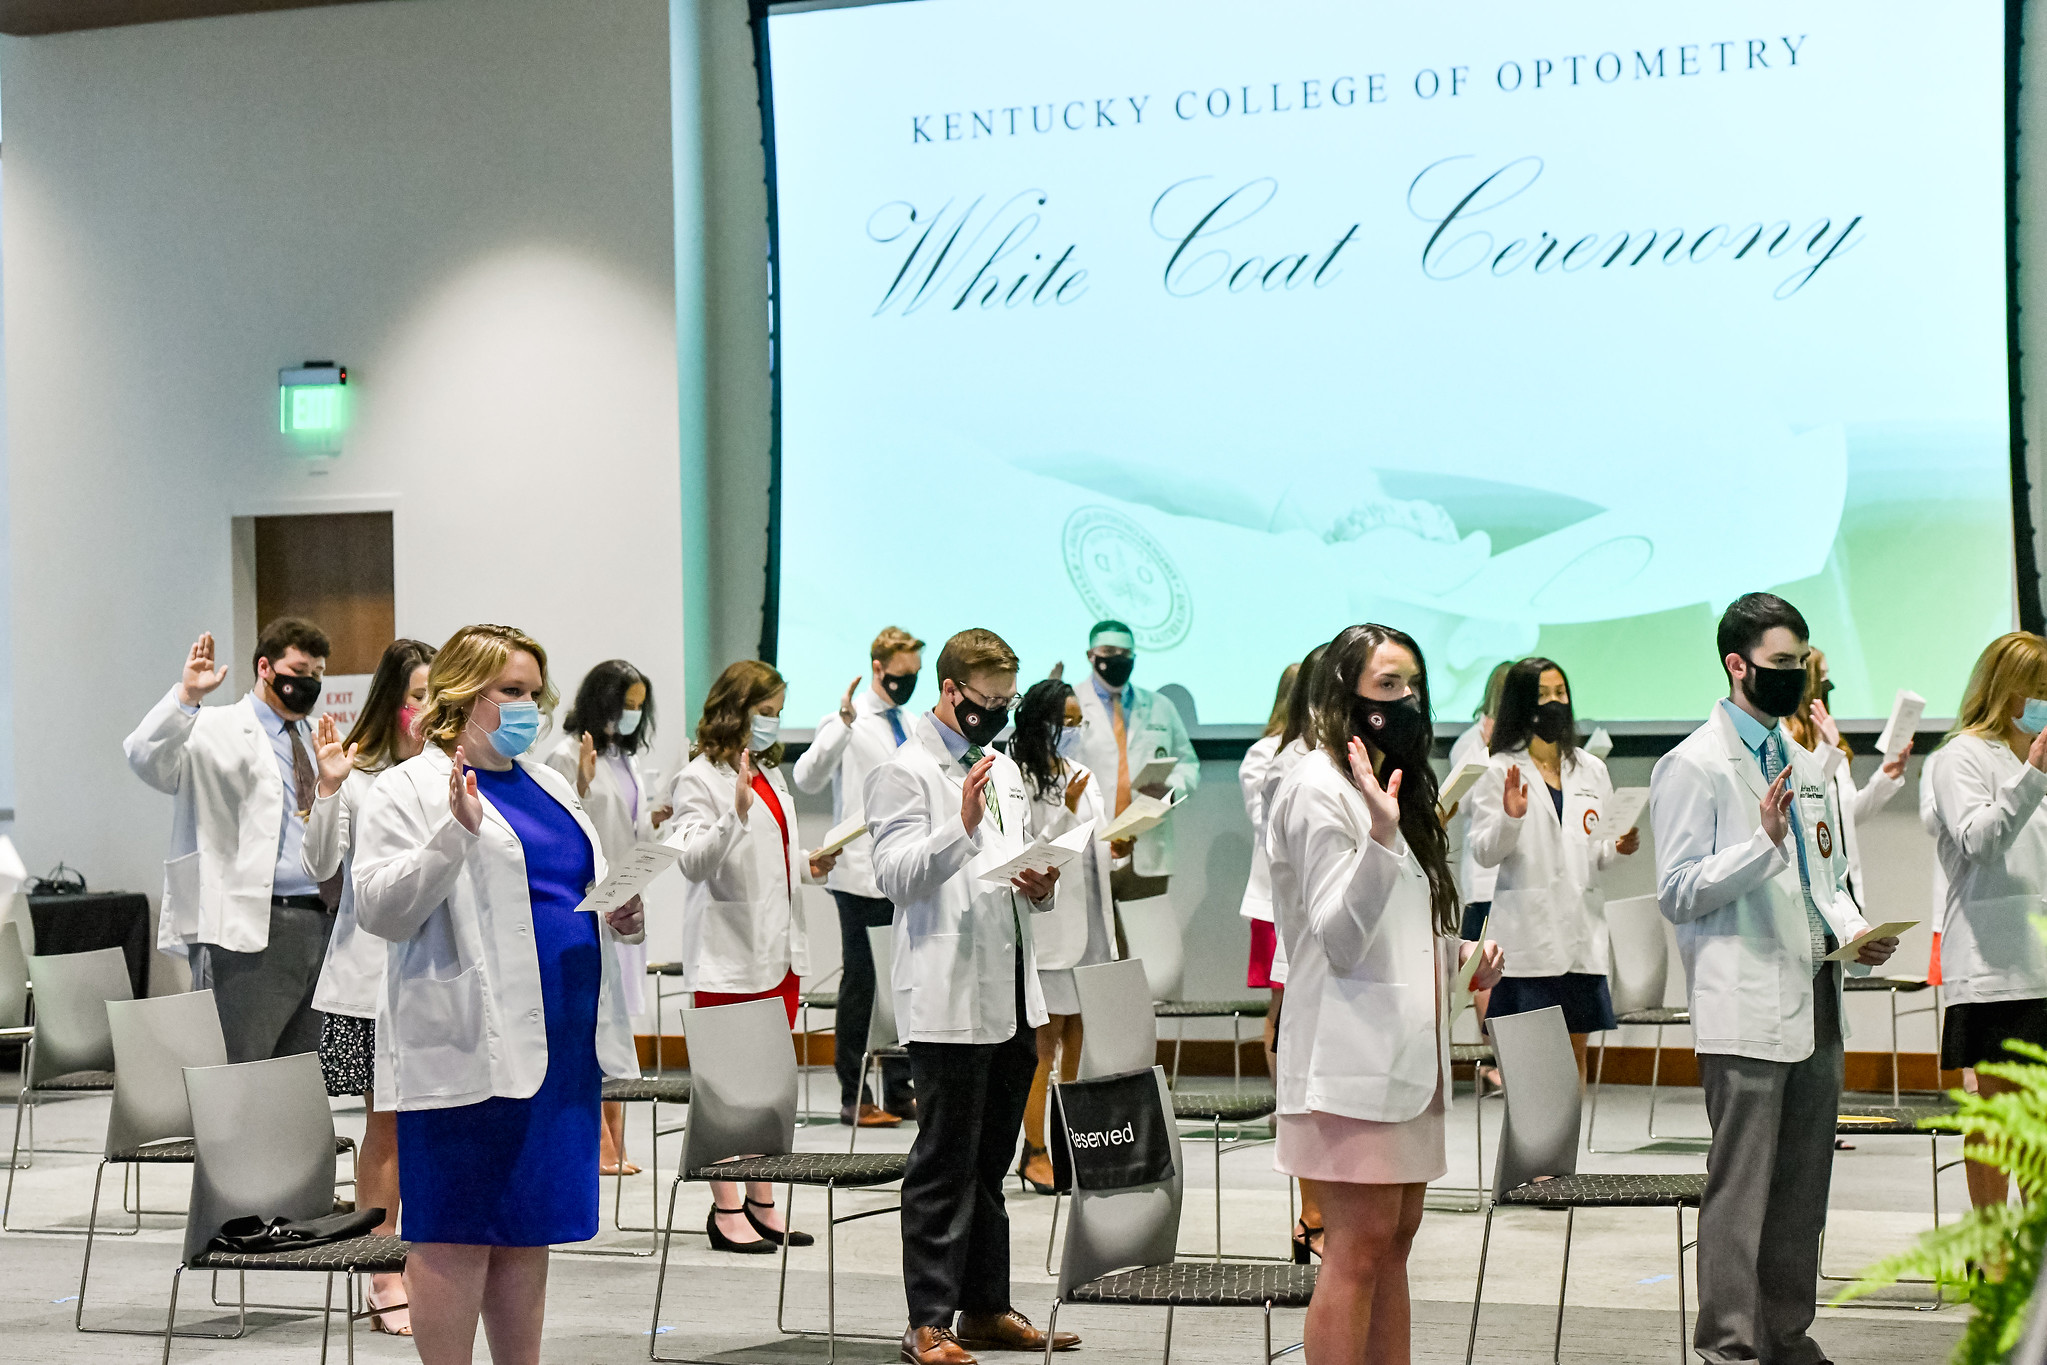 Second-year students at the Kentucky College of Optometry take part in a white-coat ceremony.